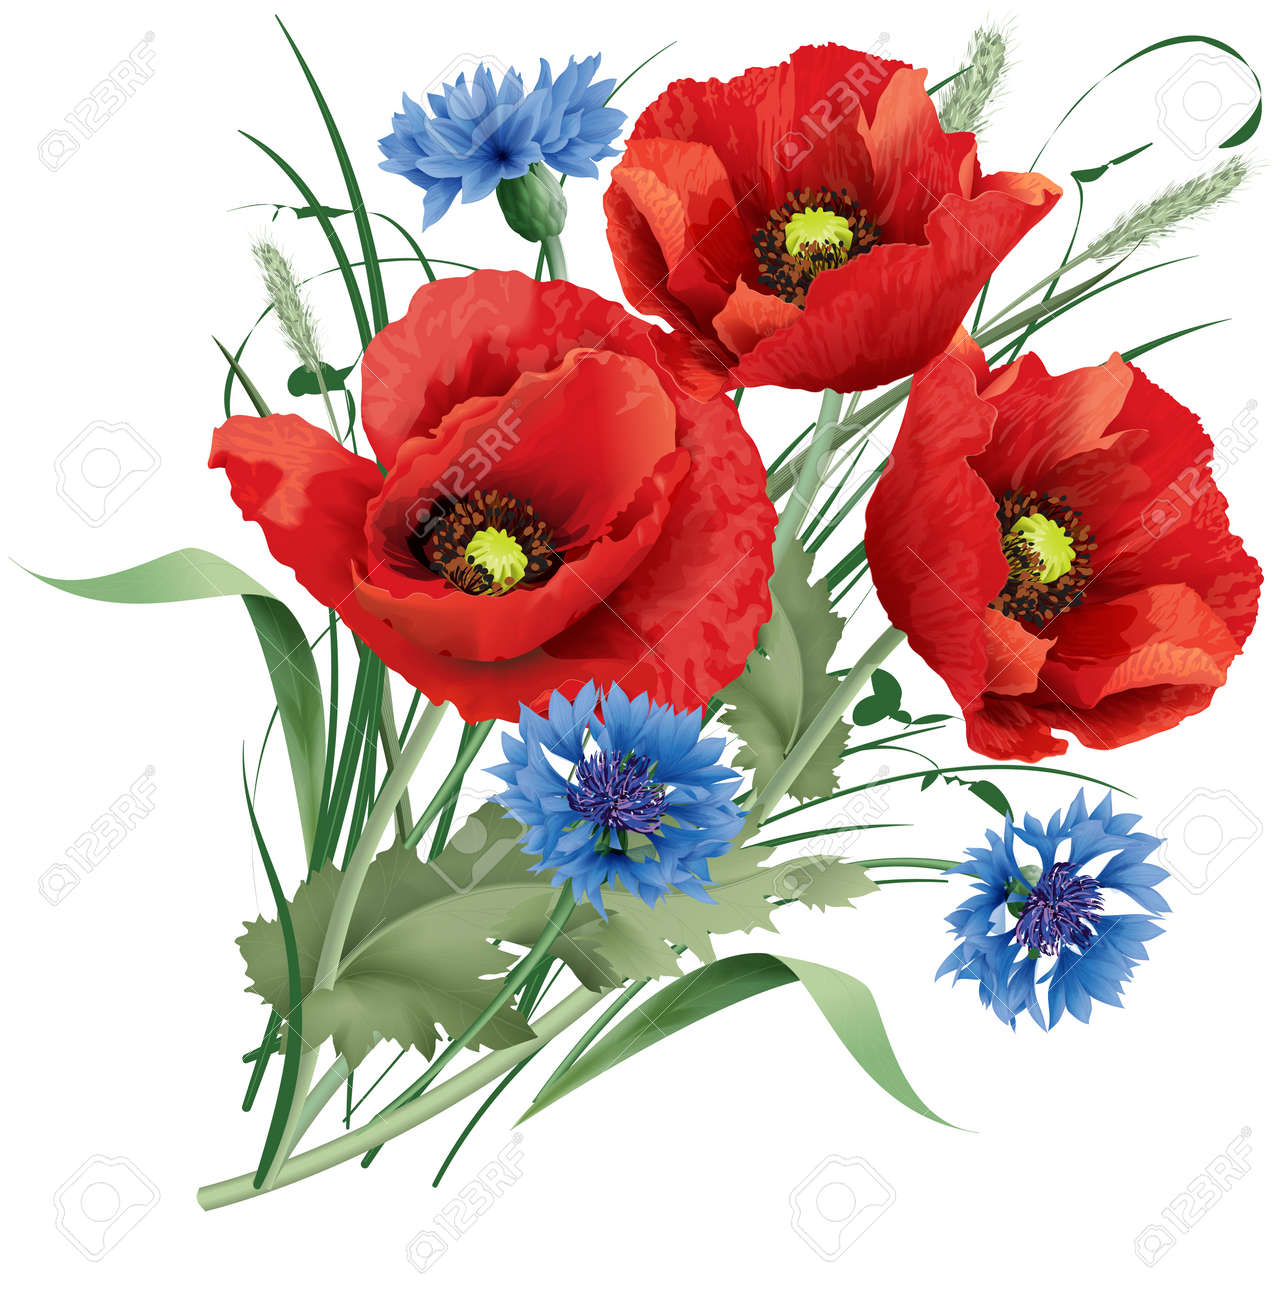 Vector illustration bunch of red poppy flower with green leaves, blue cornflakes and hare's-foot clover. - 52822796